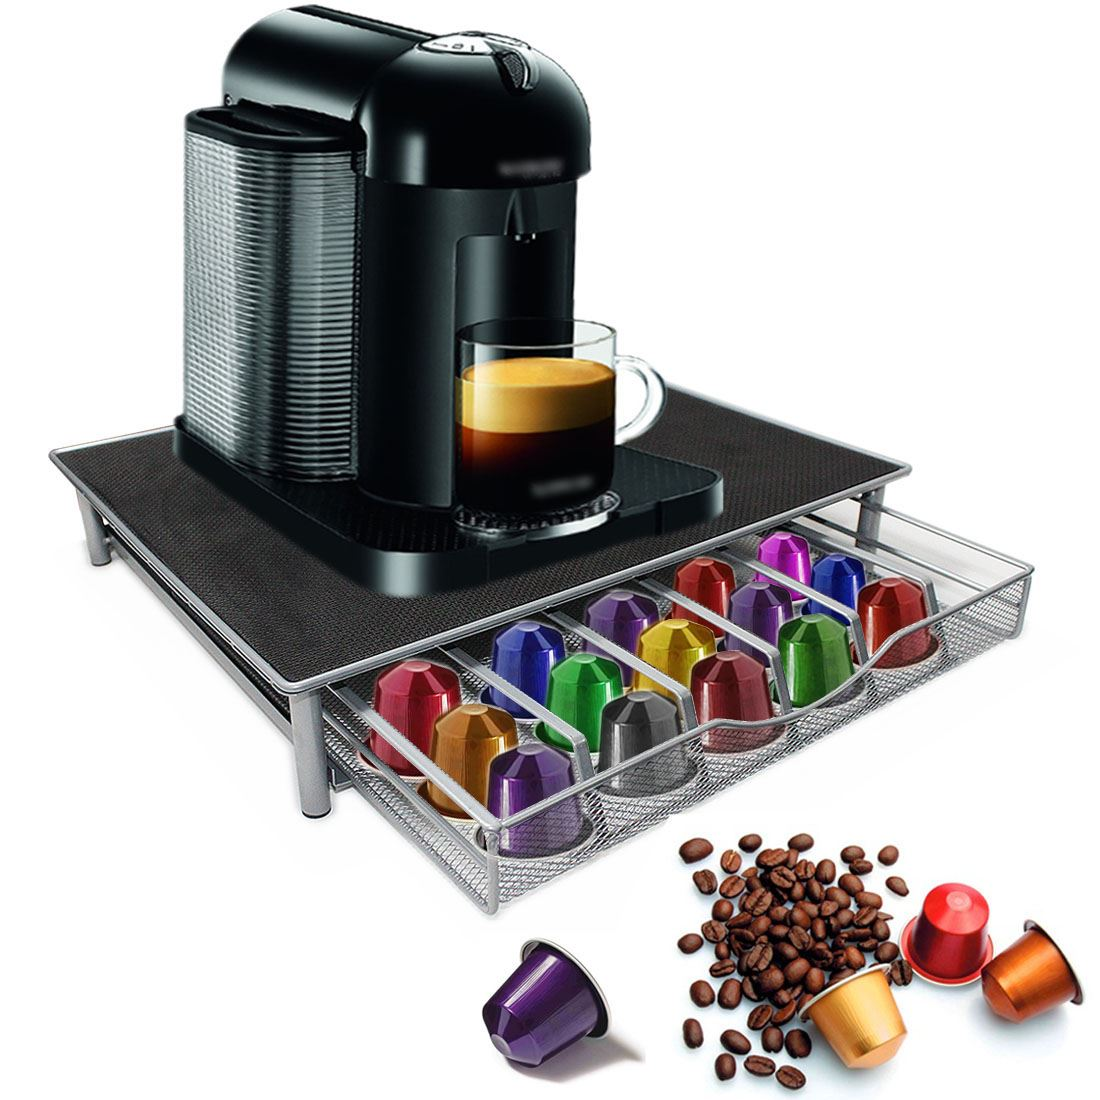 gb machine caf plate forme capsule nespresso dolce. Black Bedroom Furniture Sets. Home Design Ideas